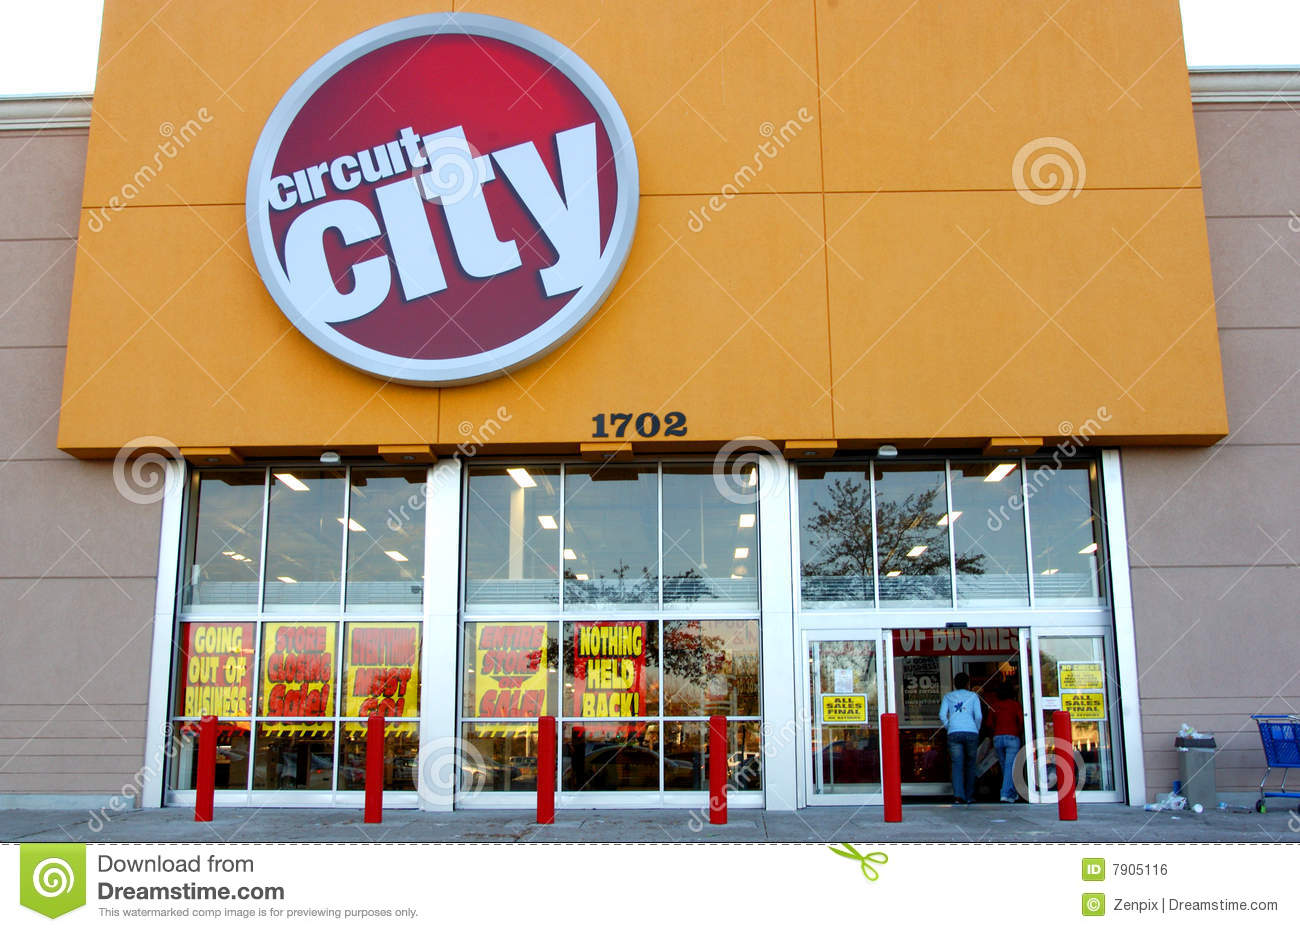 bankruptcy in circuit city essay Free essay: bankruptcy this article is intended to provide some general bankruptcy circuit city filed for bankruptcy protection under chapter 11 of the.